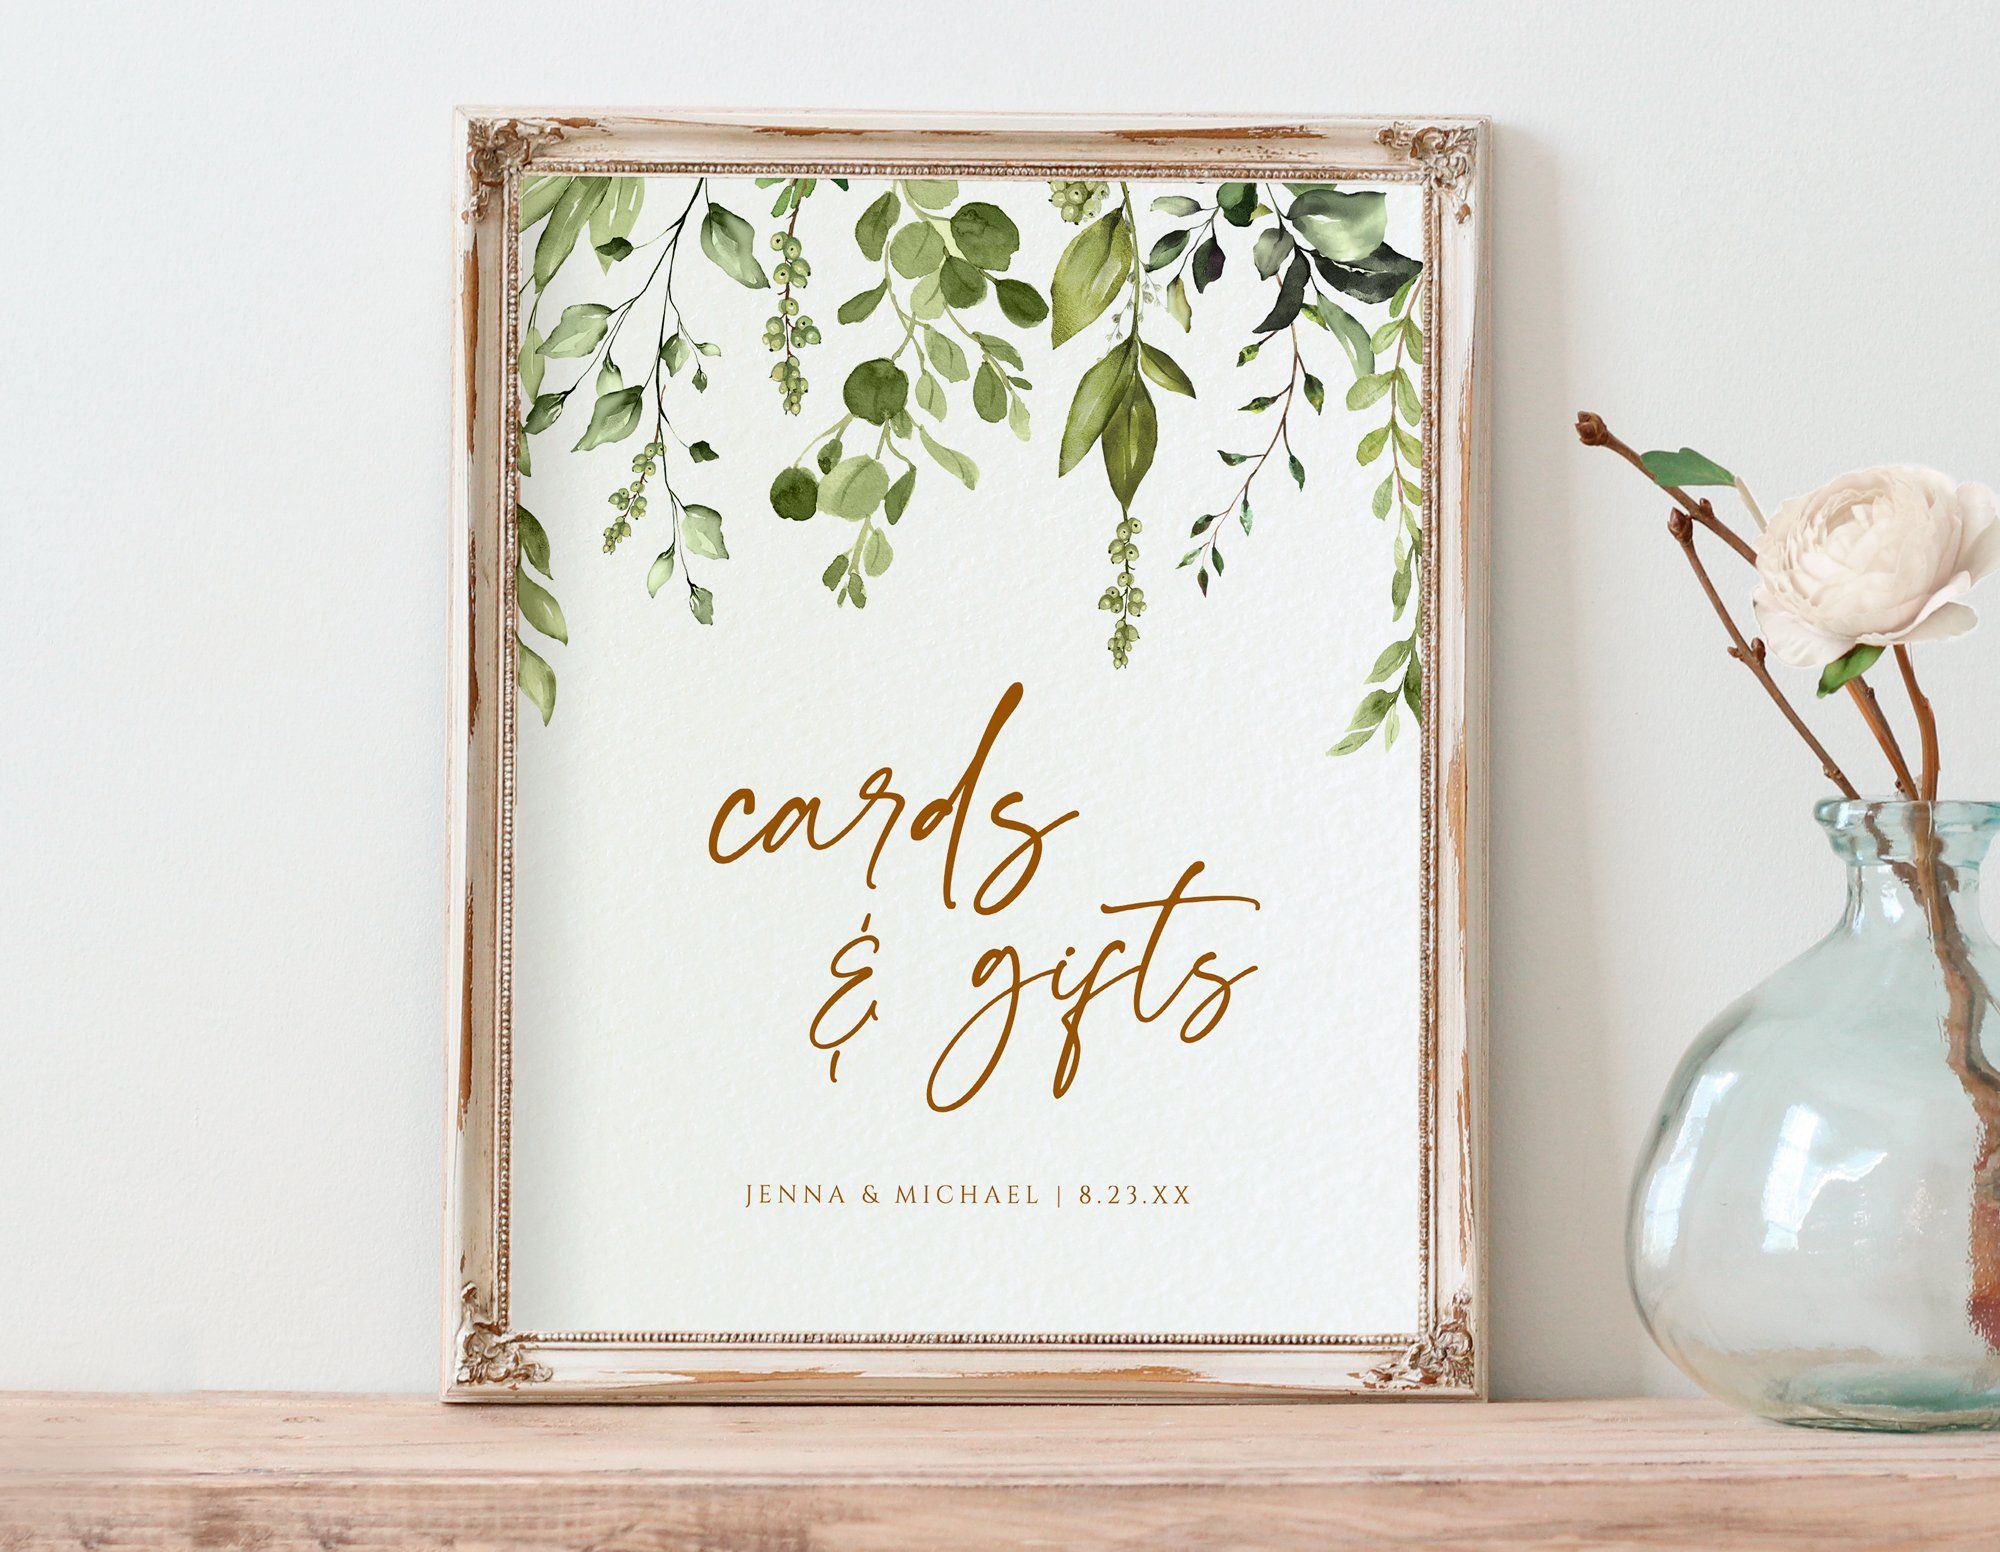 Cards Gifts Sign Template 8x10 Romantic Greenery Templett In 2020 Sign Templates Gifts Sign Wedding Templates